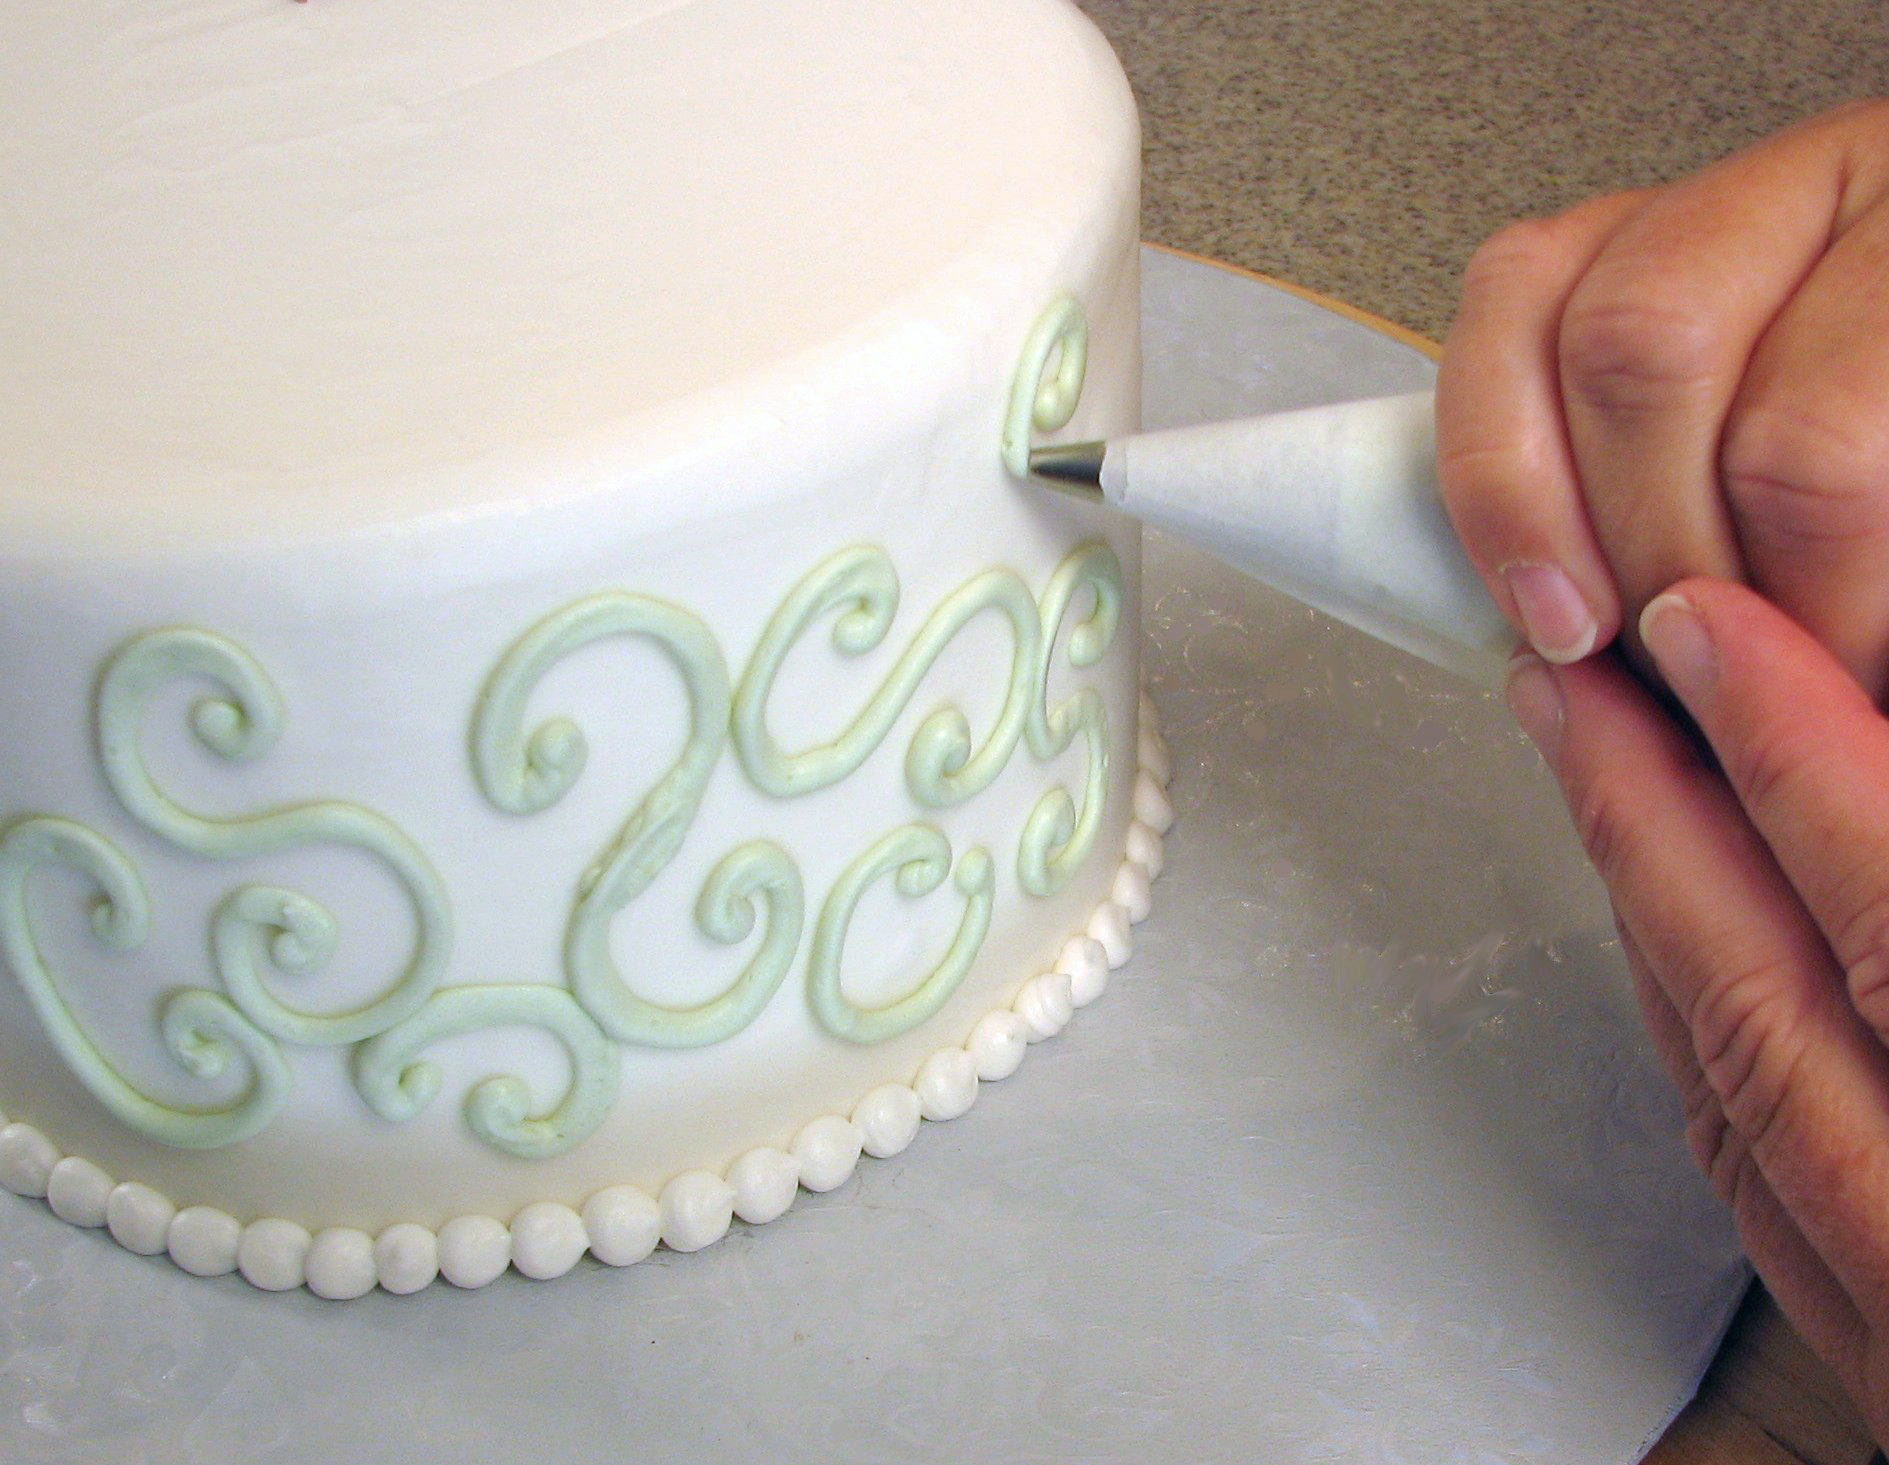 Cake Decoration By Cream : Cake decorating - Wikipedia